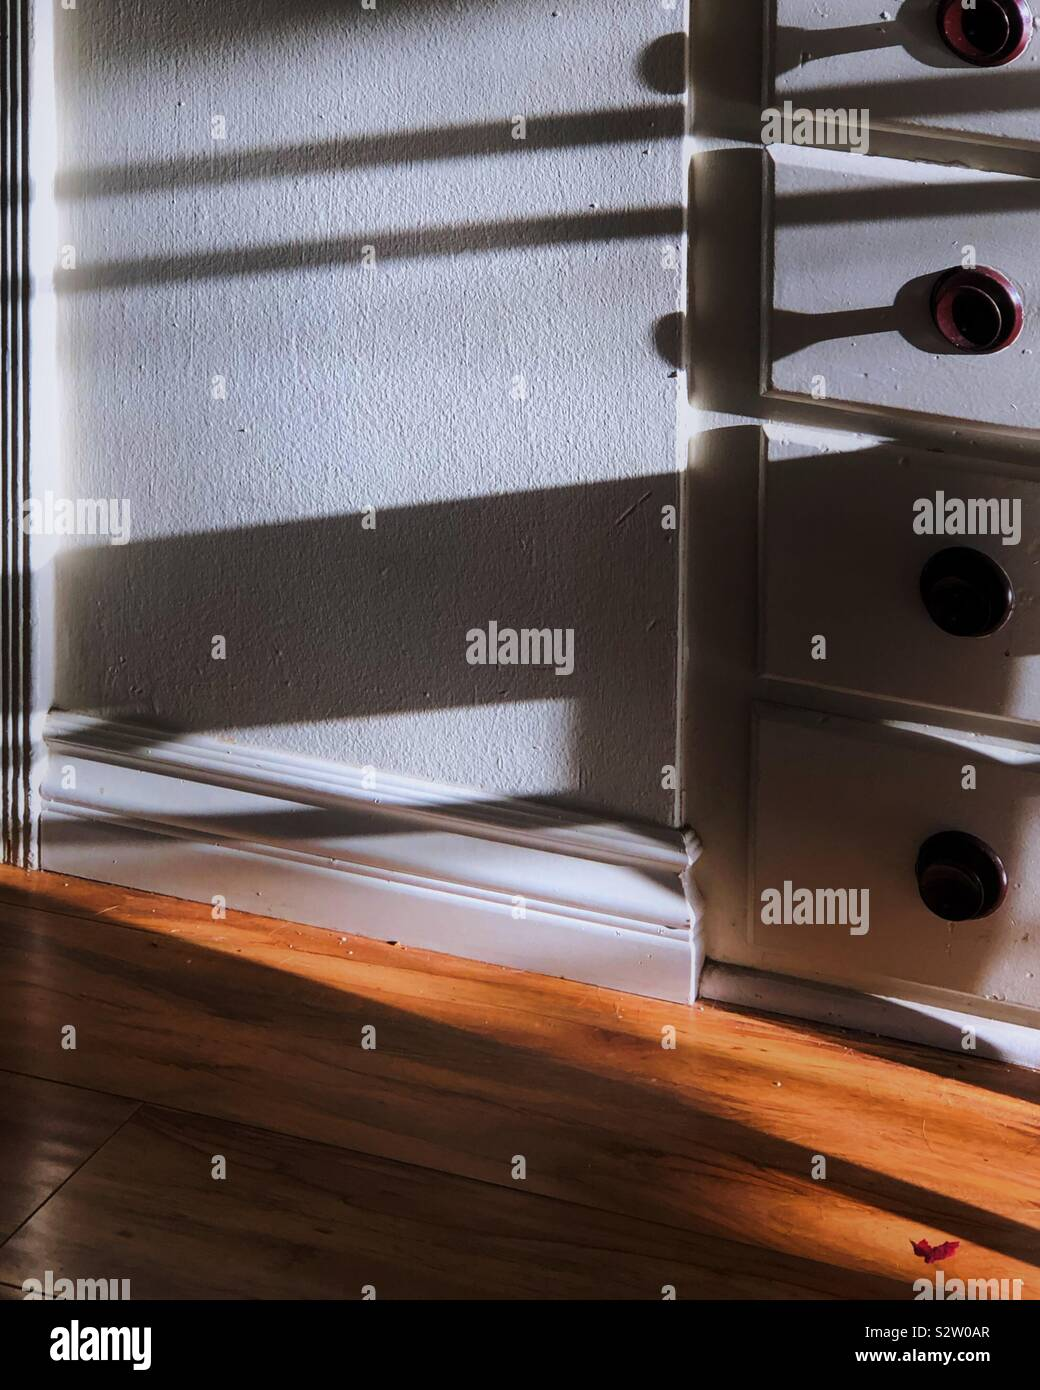 Early evening shadows spread across a builtin desk and cupboard. The hardwood floors kick up a lot of ambient light. Stock Photo